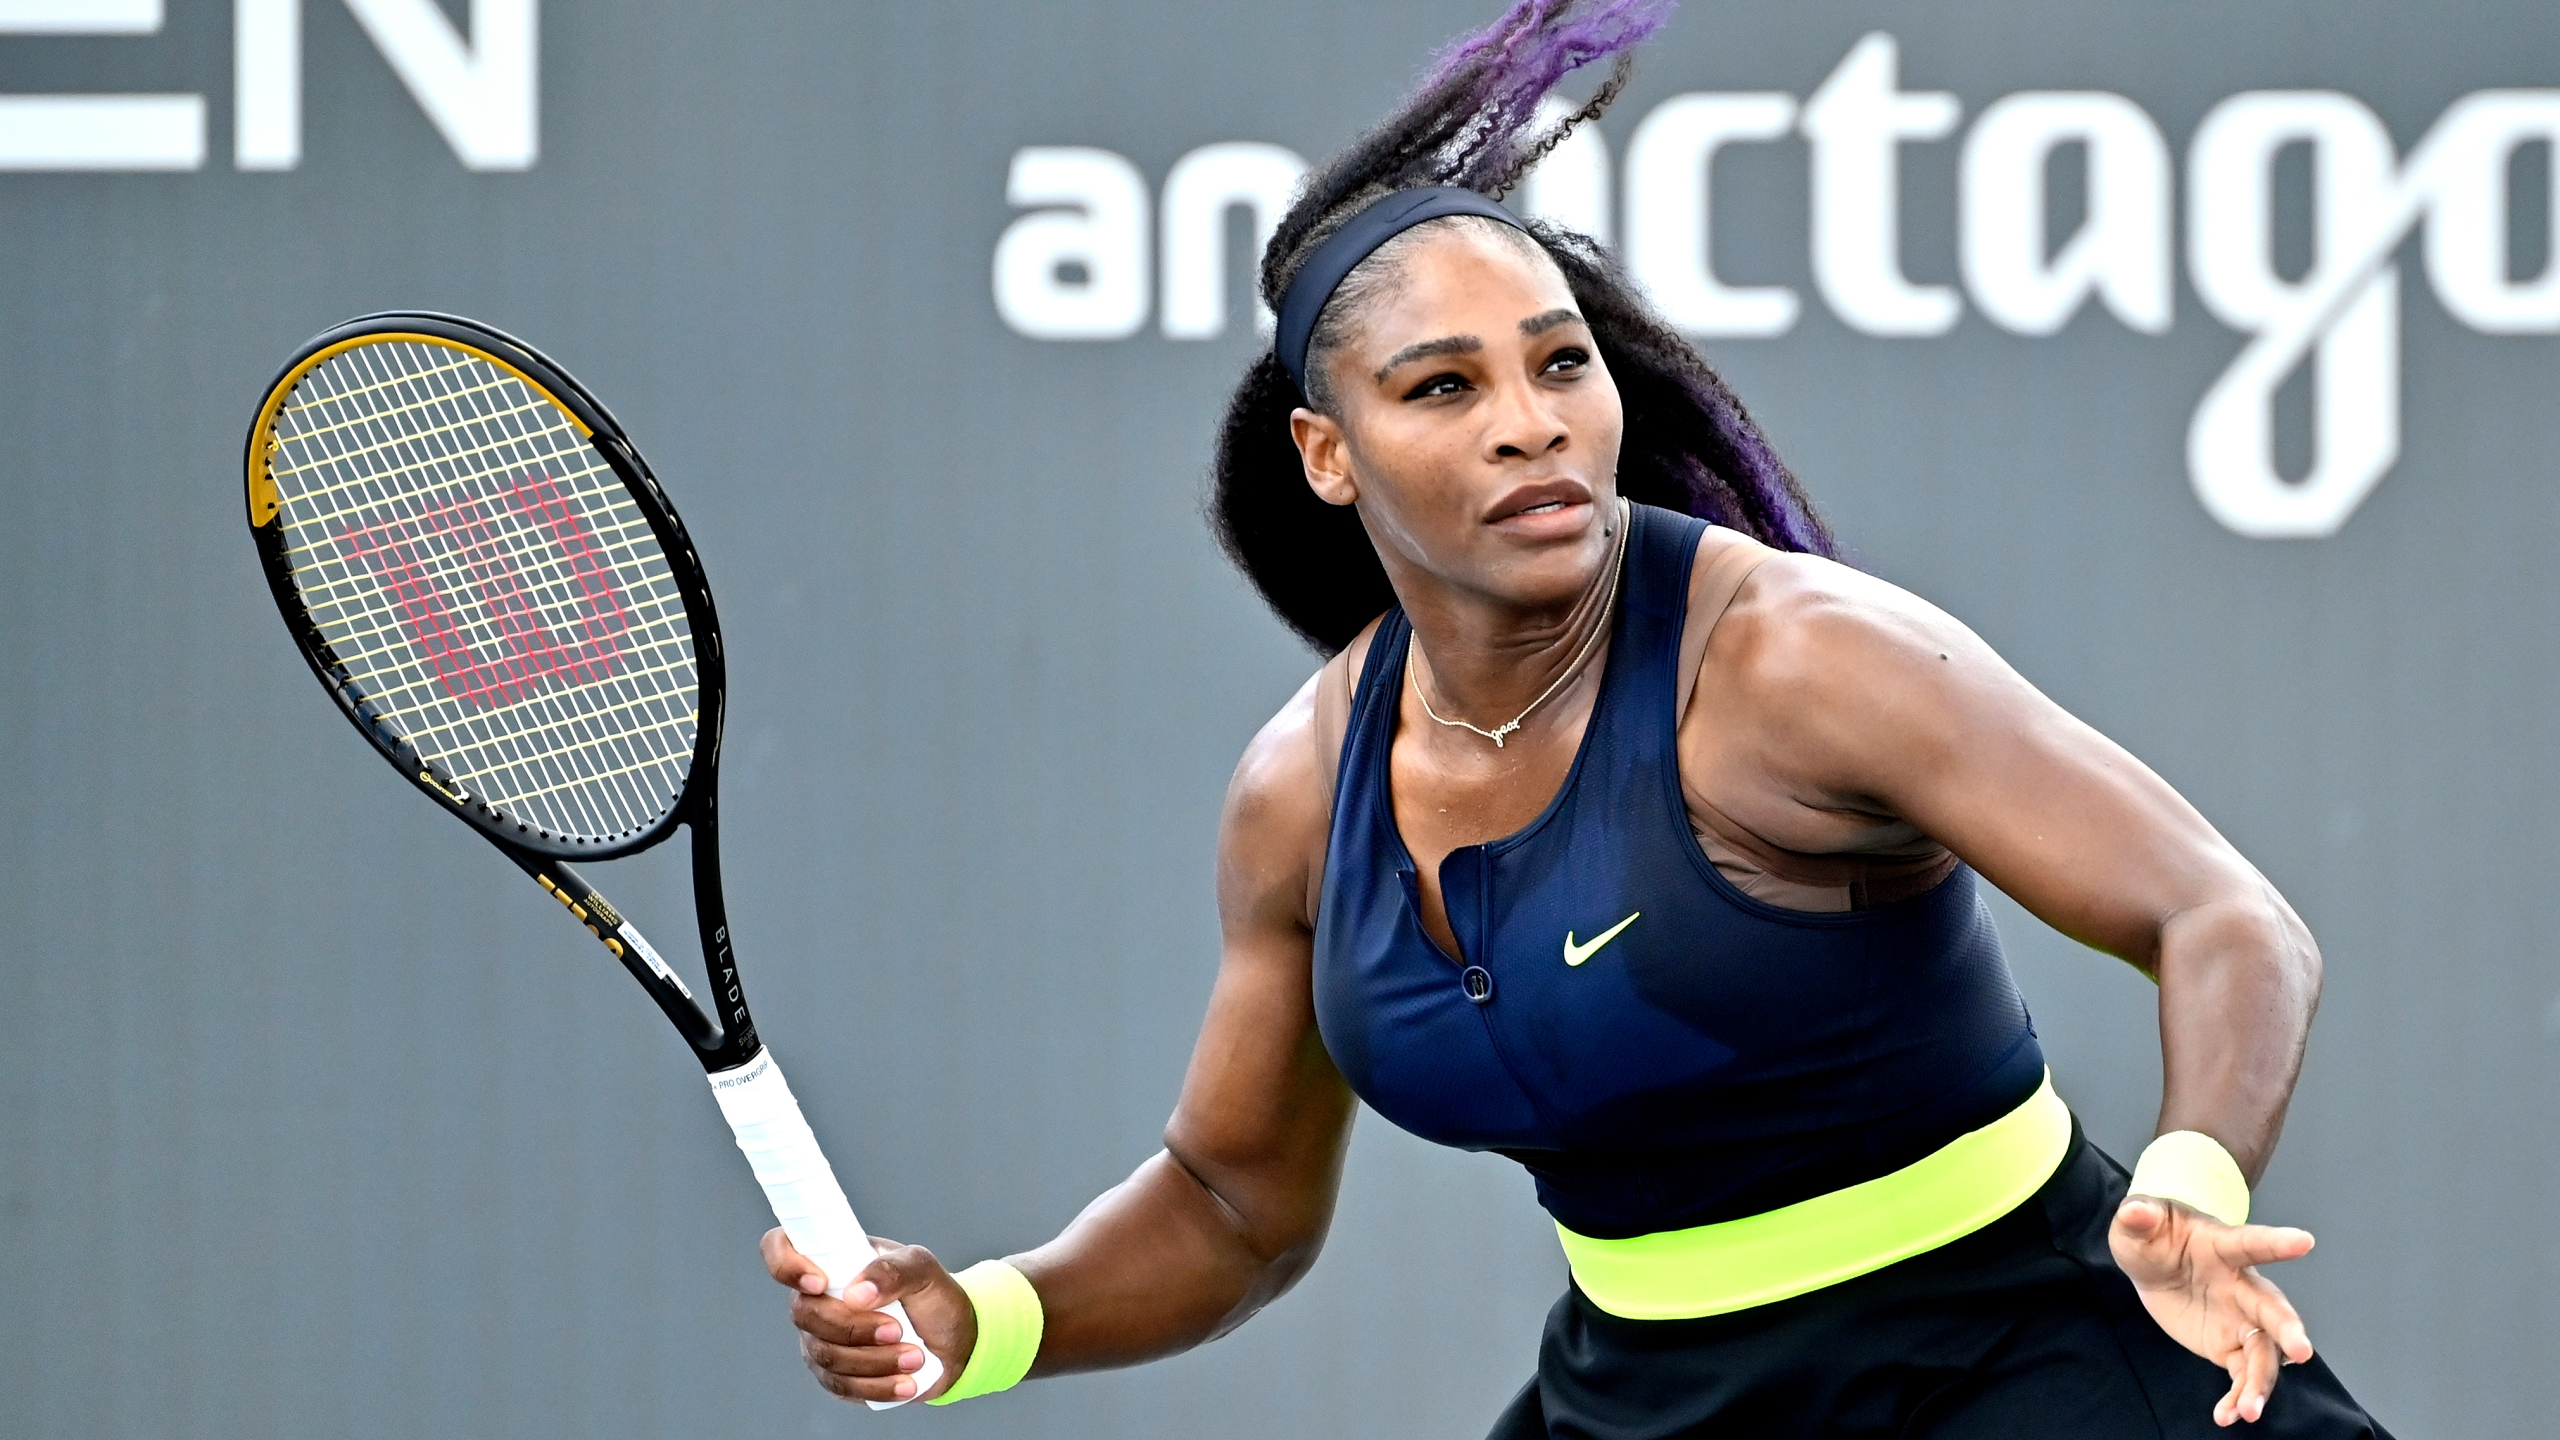 Nicholasville Ky Christmas Parade 2020 Serena Williams loses to woman ranked 116th; Coco Gauff wins | WFXRtv